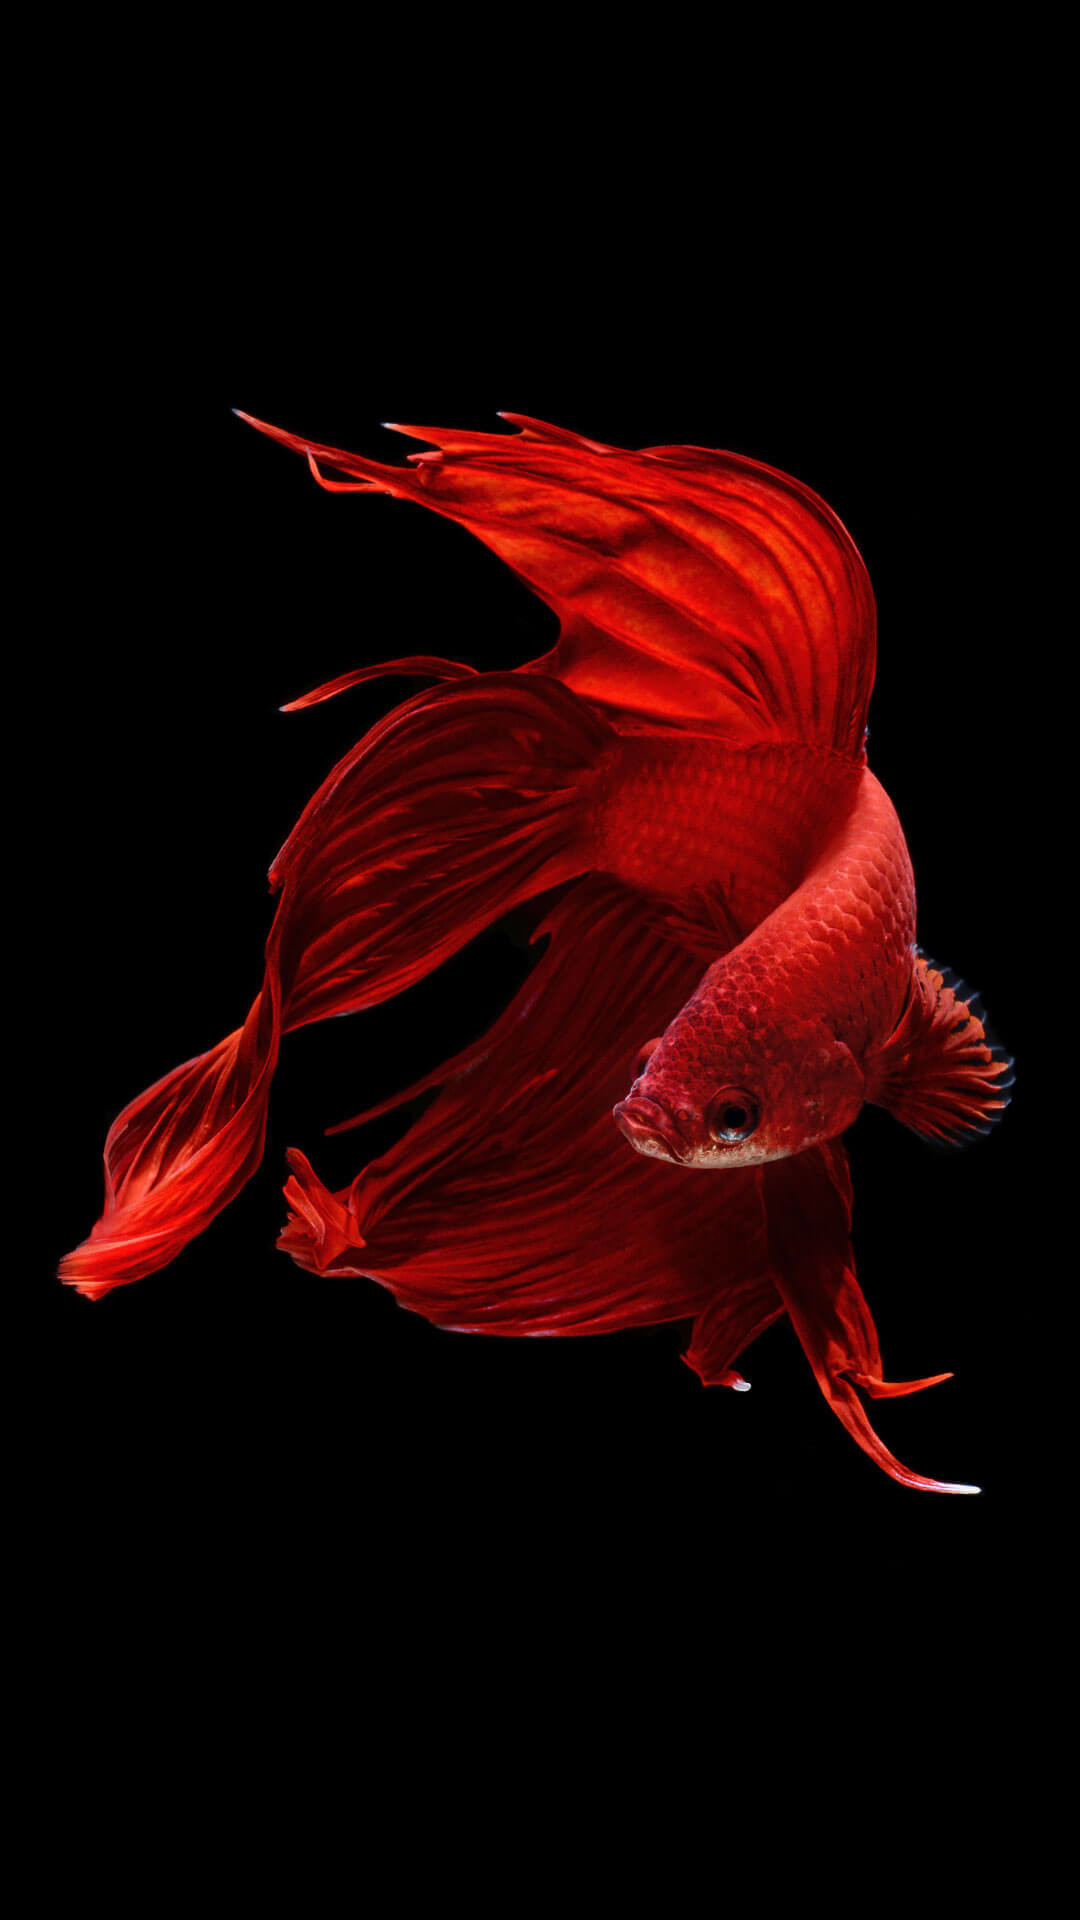 Red Fish Wallpaper (64+ images)